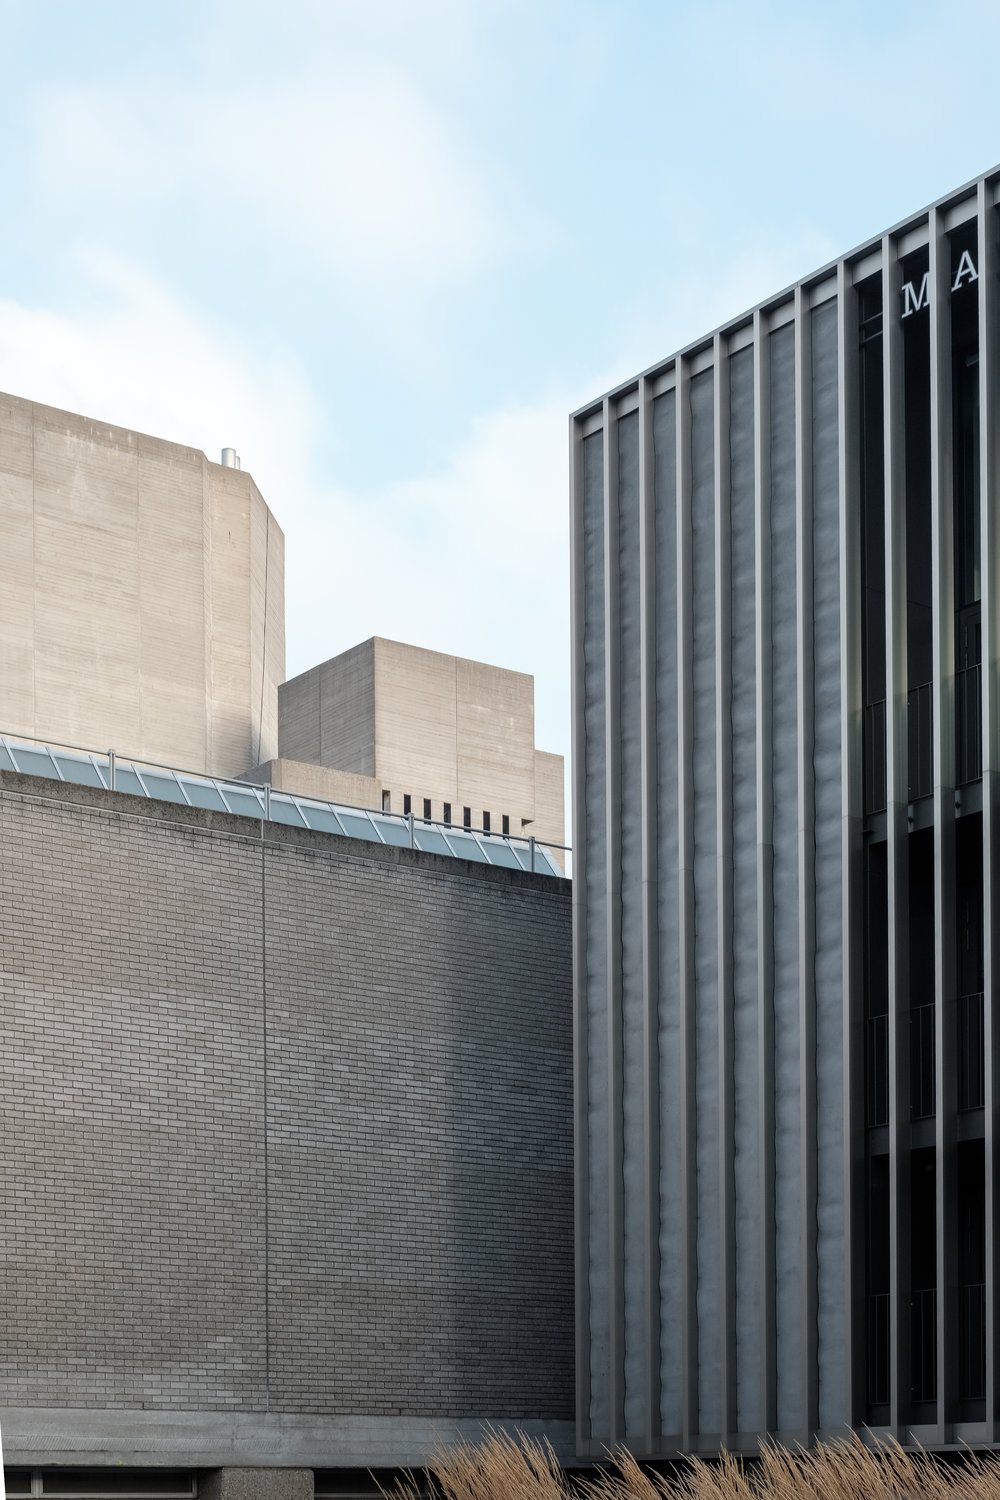 Fred+Howarth+Photography_National+Theater_06.jpg